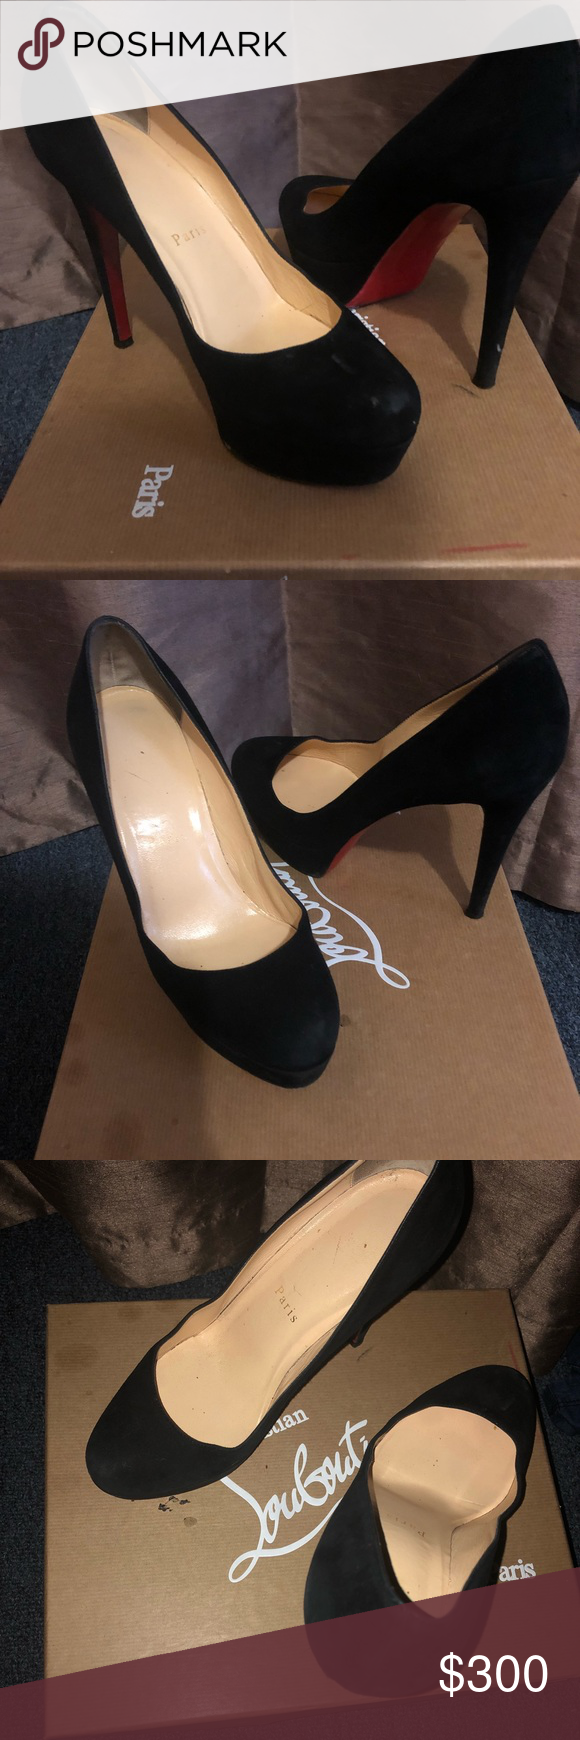 sale retailer dd857 4cd03 Pre owned Cristian Louboutin Suede Black Pumps . Very ...